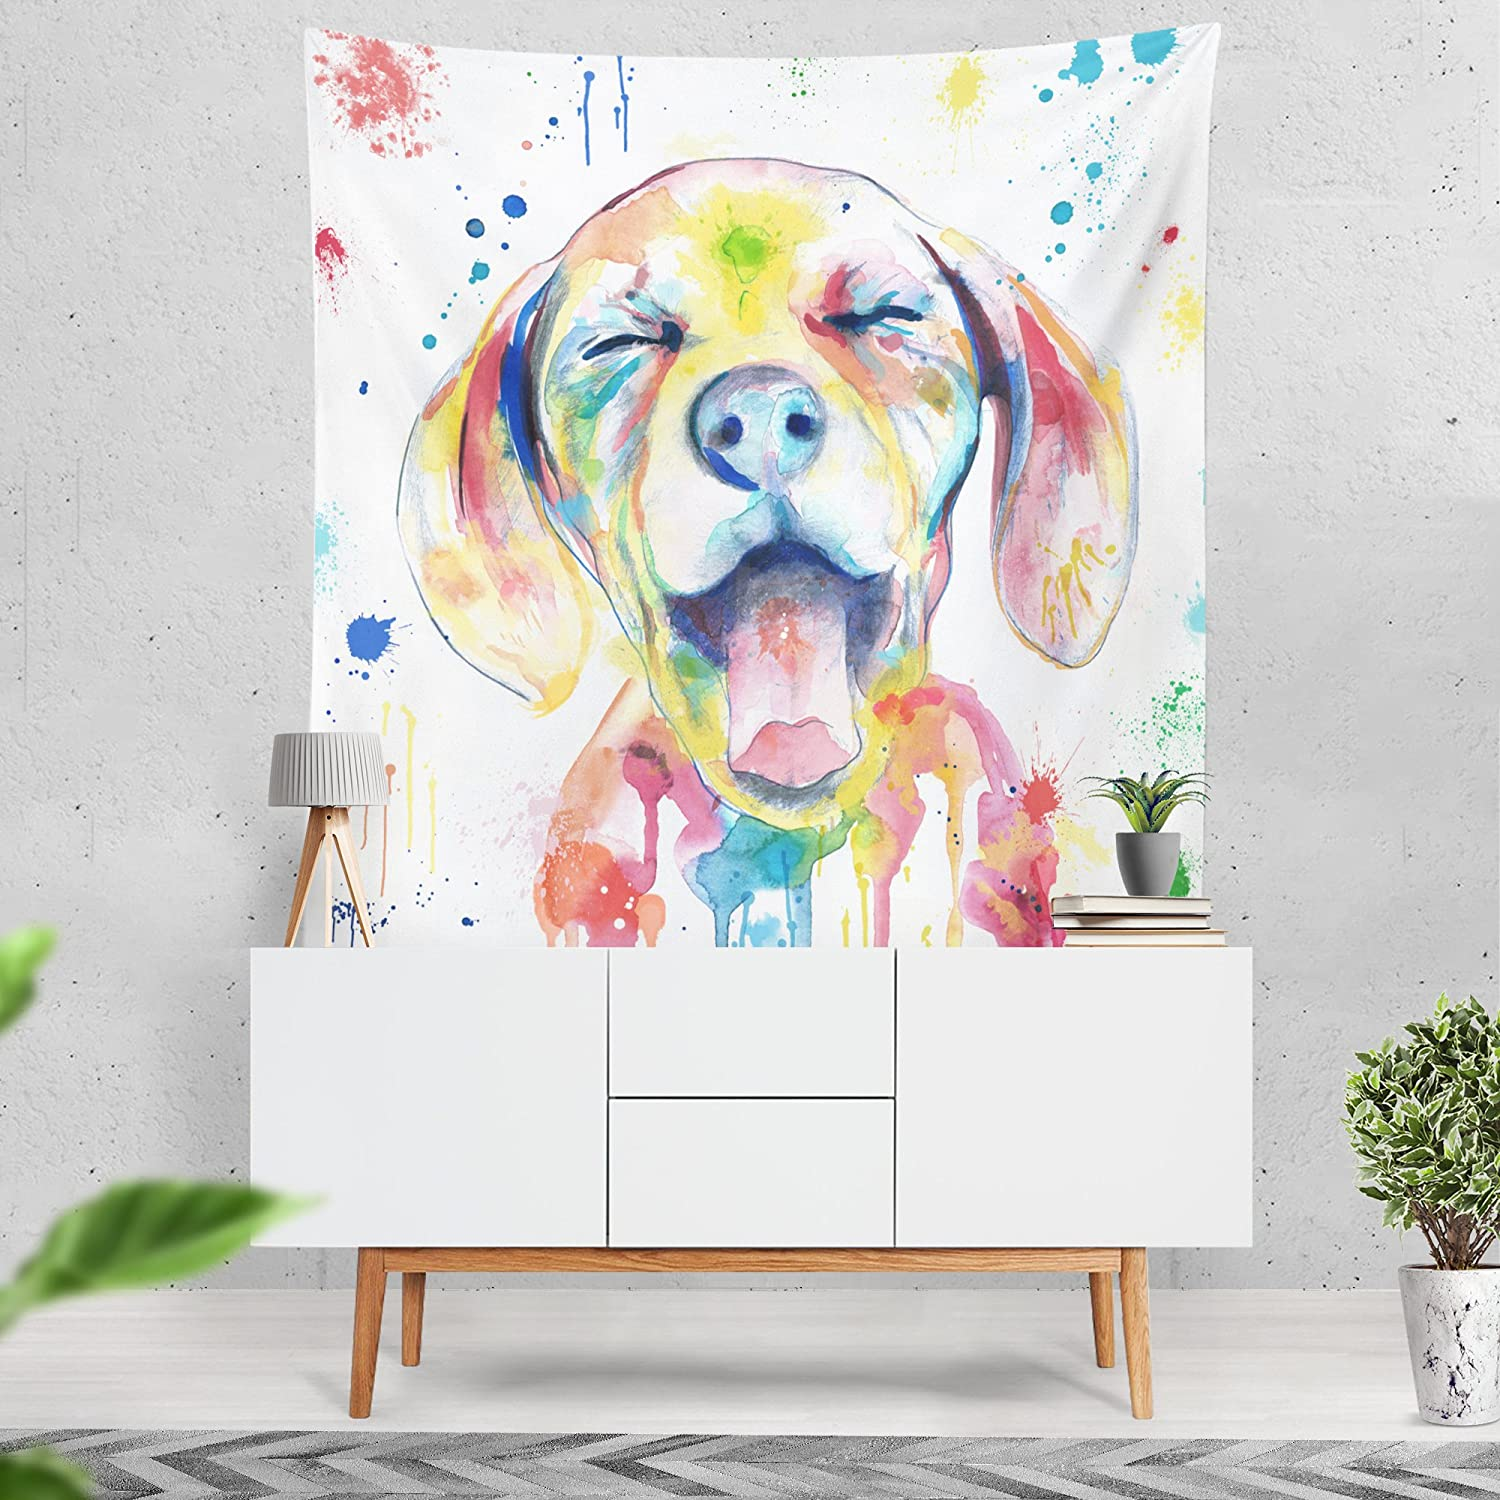 Lume.ly - Ditzy Dog colorful Large Wall Tapestry, Exclusive Vibrant Art Decor for Bedroom Living Room Dorm Wall Decor, Wall Hanging, Beach Tapestries (60x80 inches)